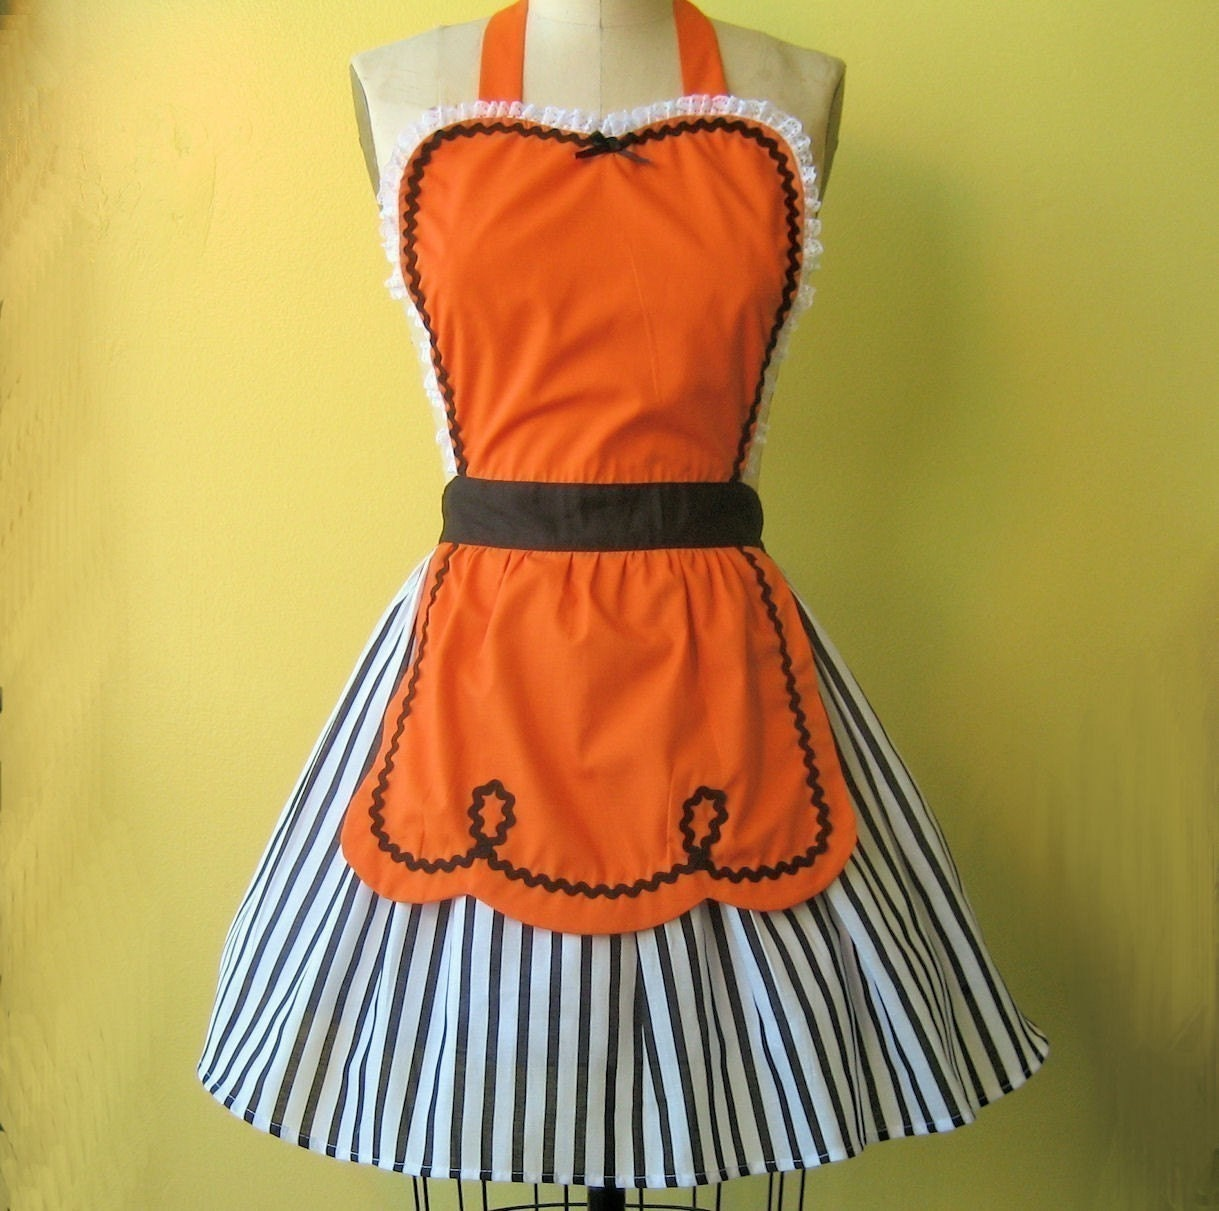 retro apron Halloween apron ORANGE BLACK full apron 50s Diner WAITRESS ... sexy hostess gift vintage inspired flirty Thanksgiving Harvest